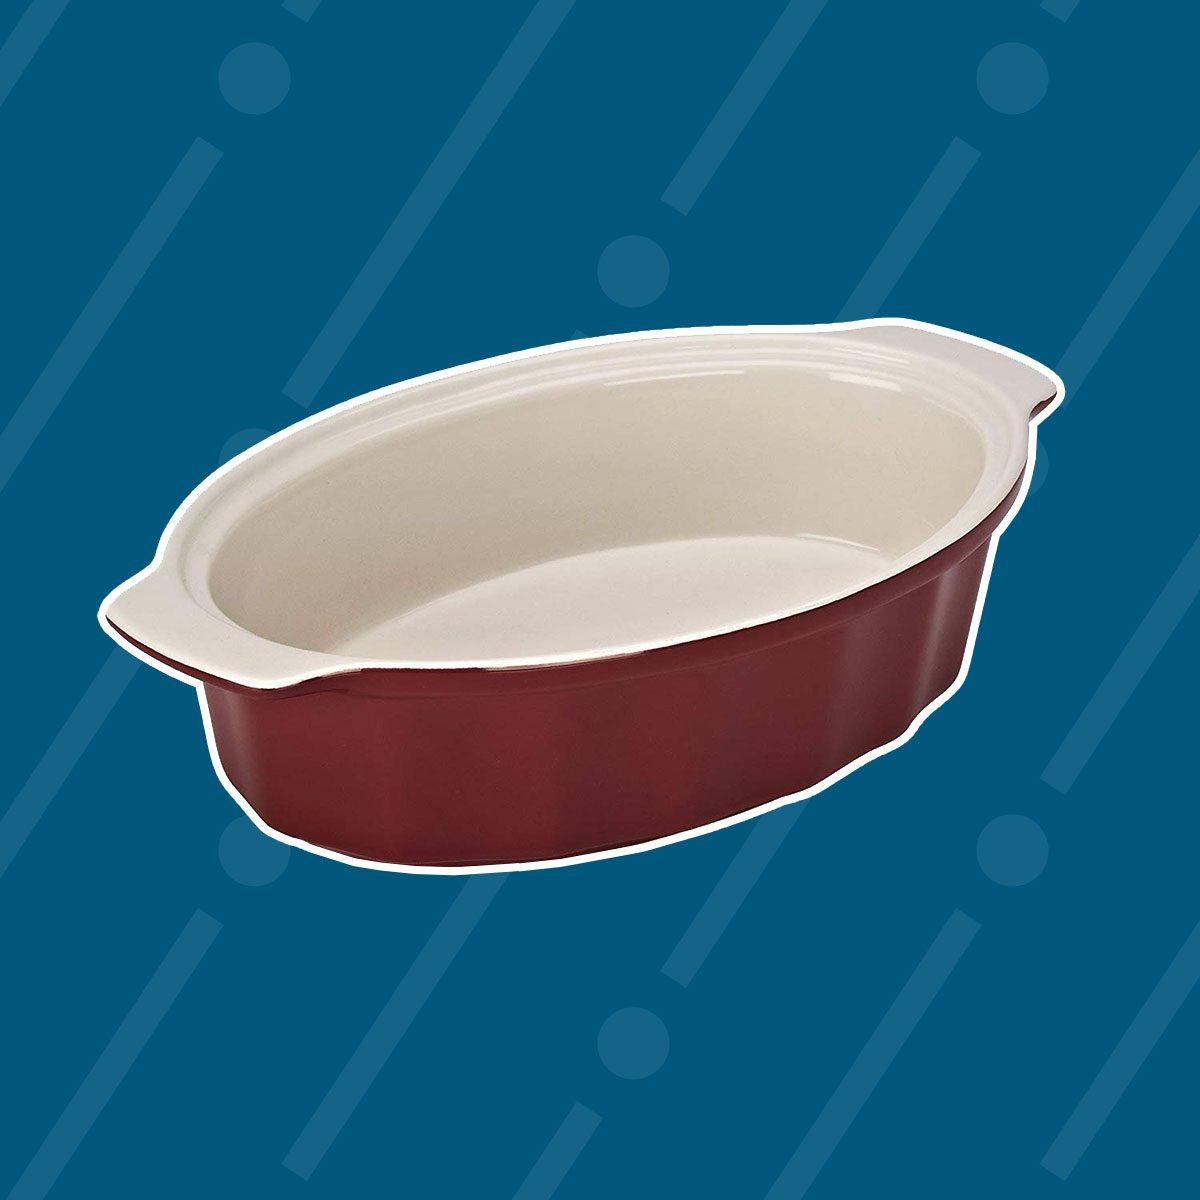 Good Cook casserole dish